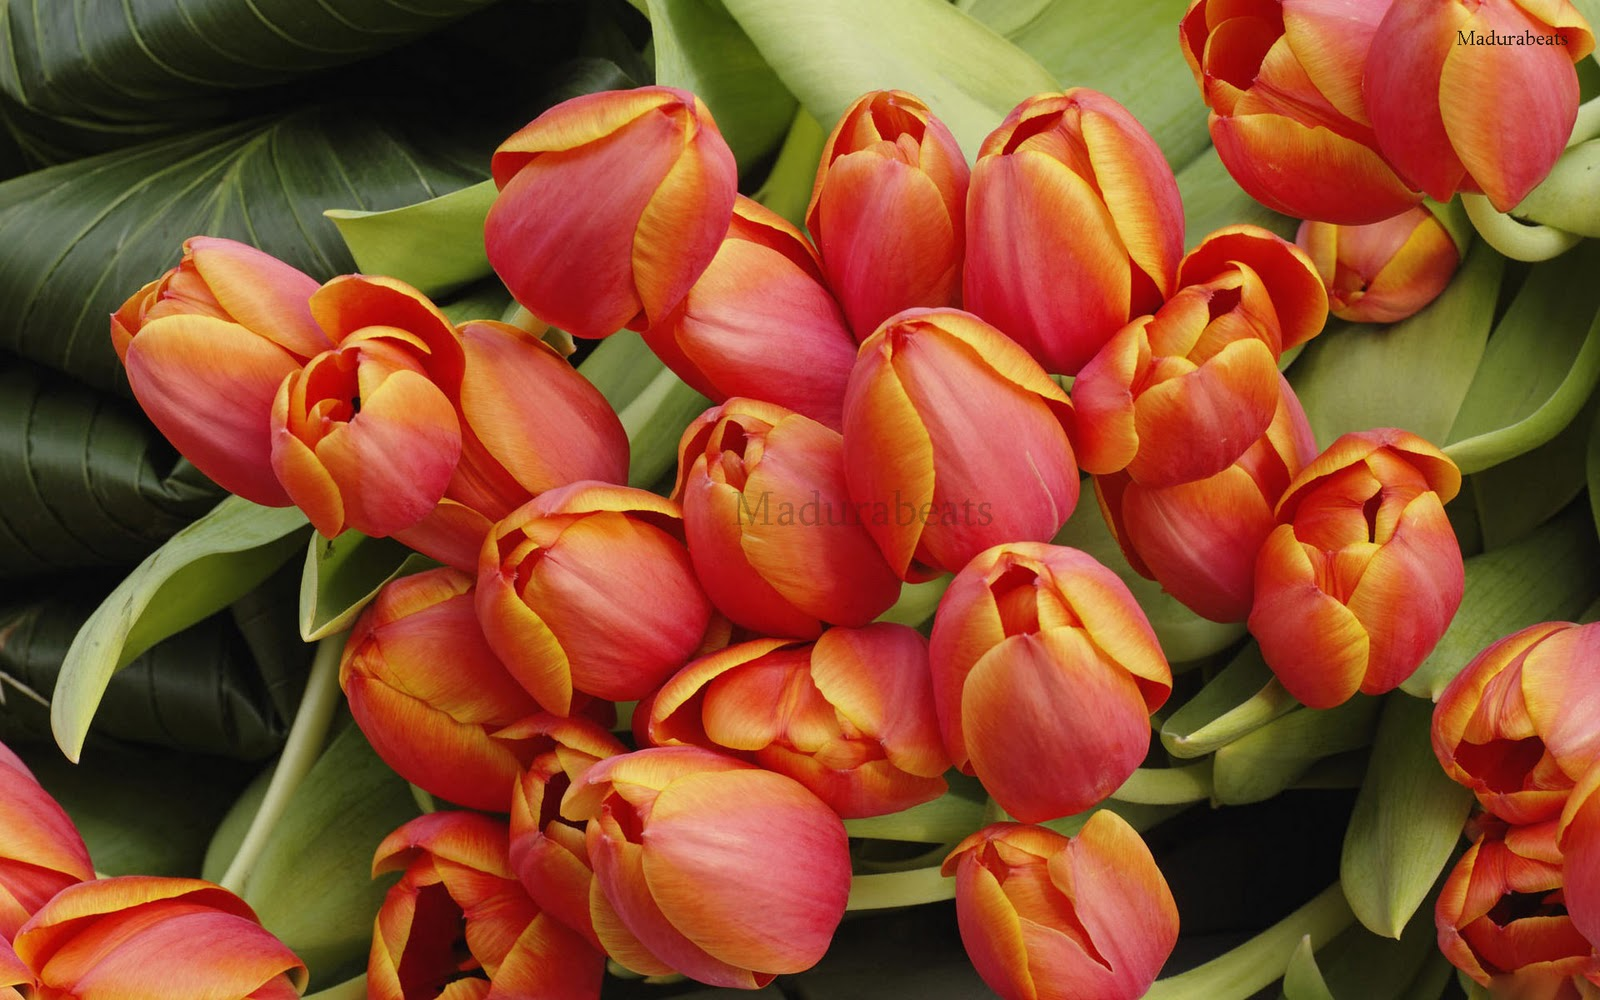 Tulips_blooming_garden_plants_hd_wallpaper1,Flower images, Wide screen wallpapers,fresh flowers,Beautiful flowers